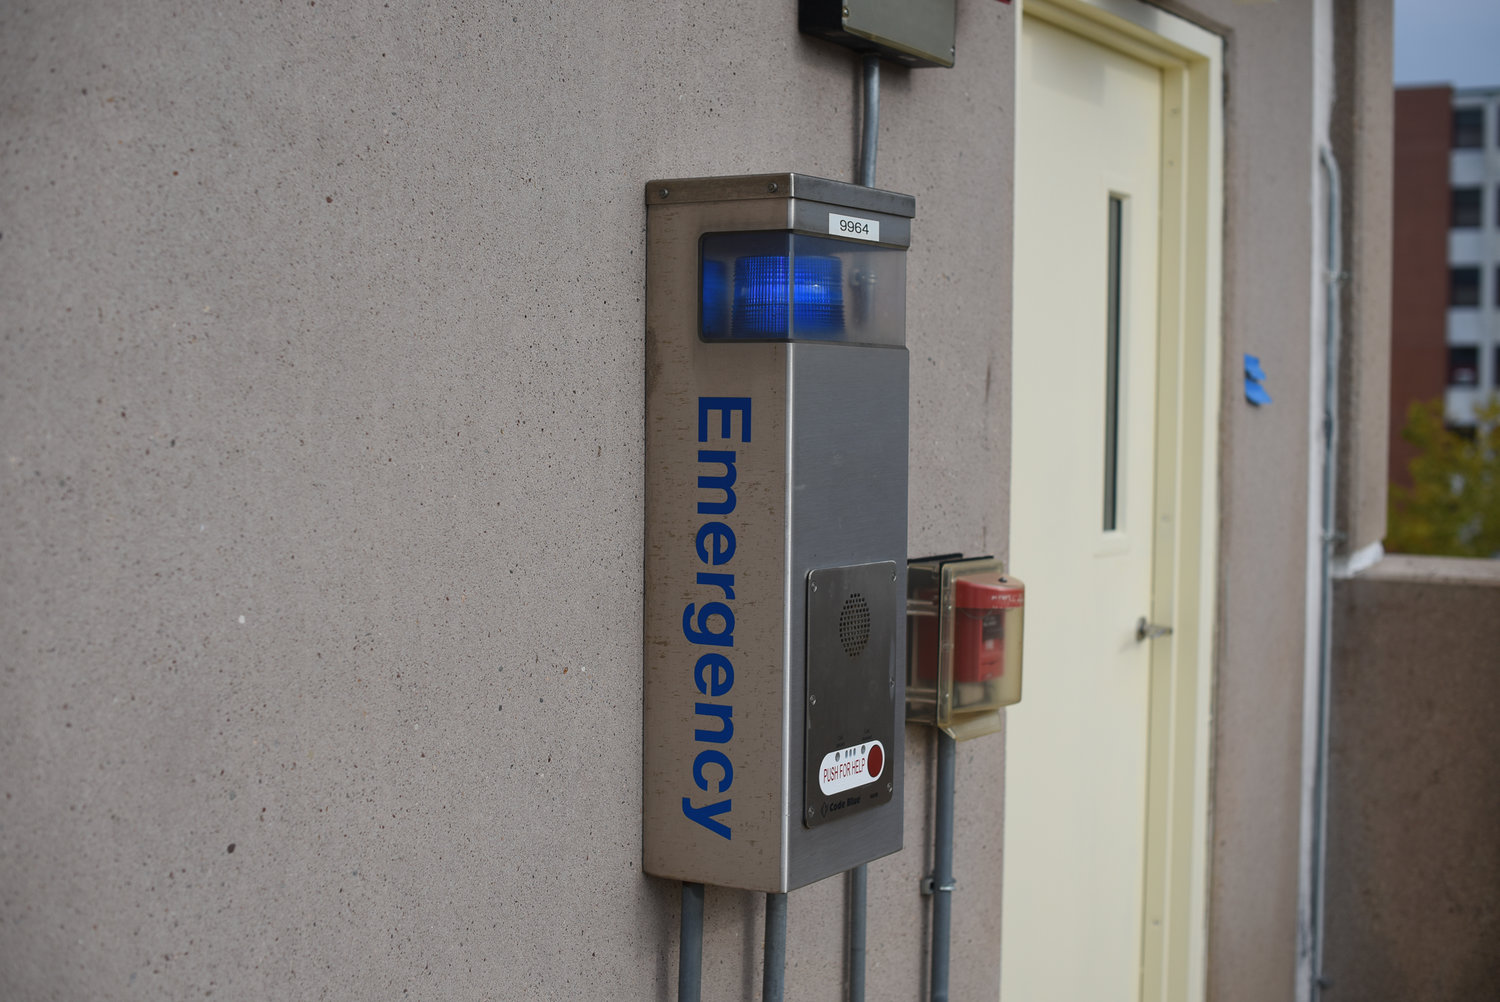 Blue Lights can be found all around campus to help students in emergency situations. The university is currently searching for new alternatives including phone applications to replace the system. (Zhelun Lang/The Daily Campus)